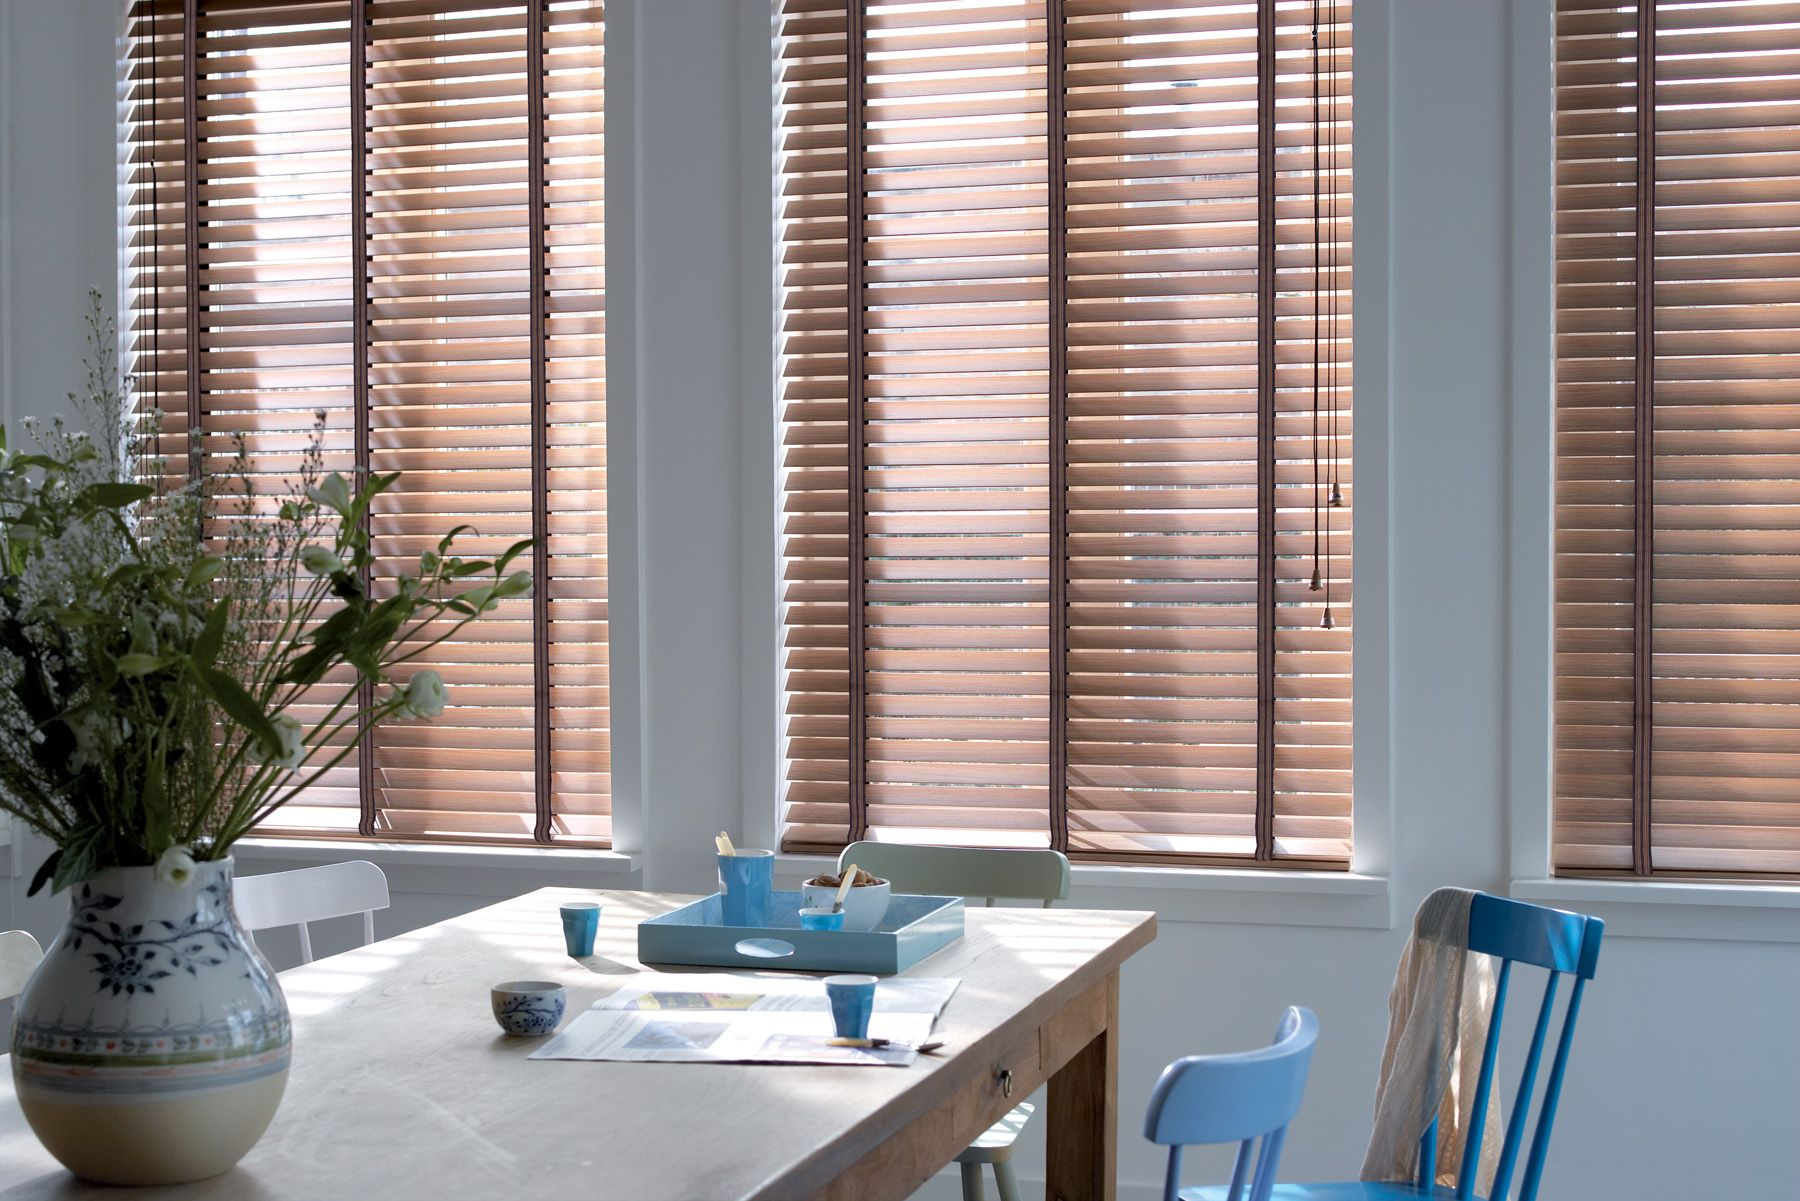 Divine Bathroom Kitchen Laundry, Blind Inspiration #Blinds